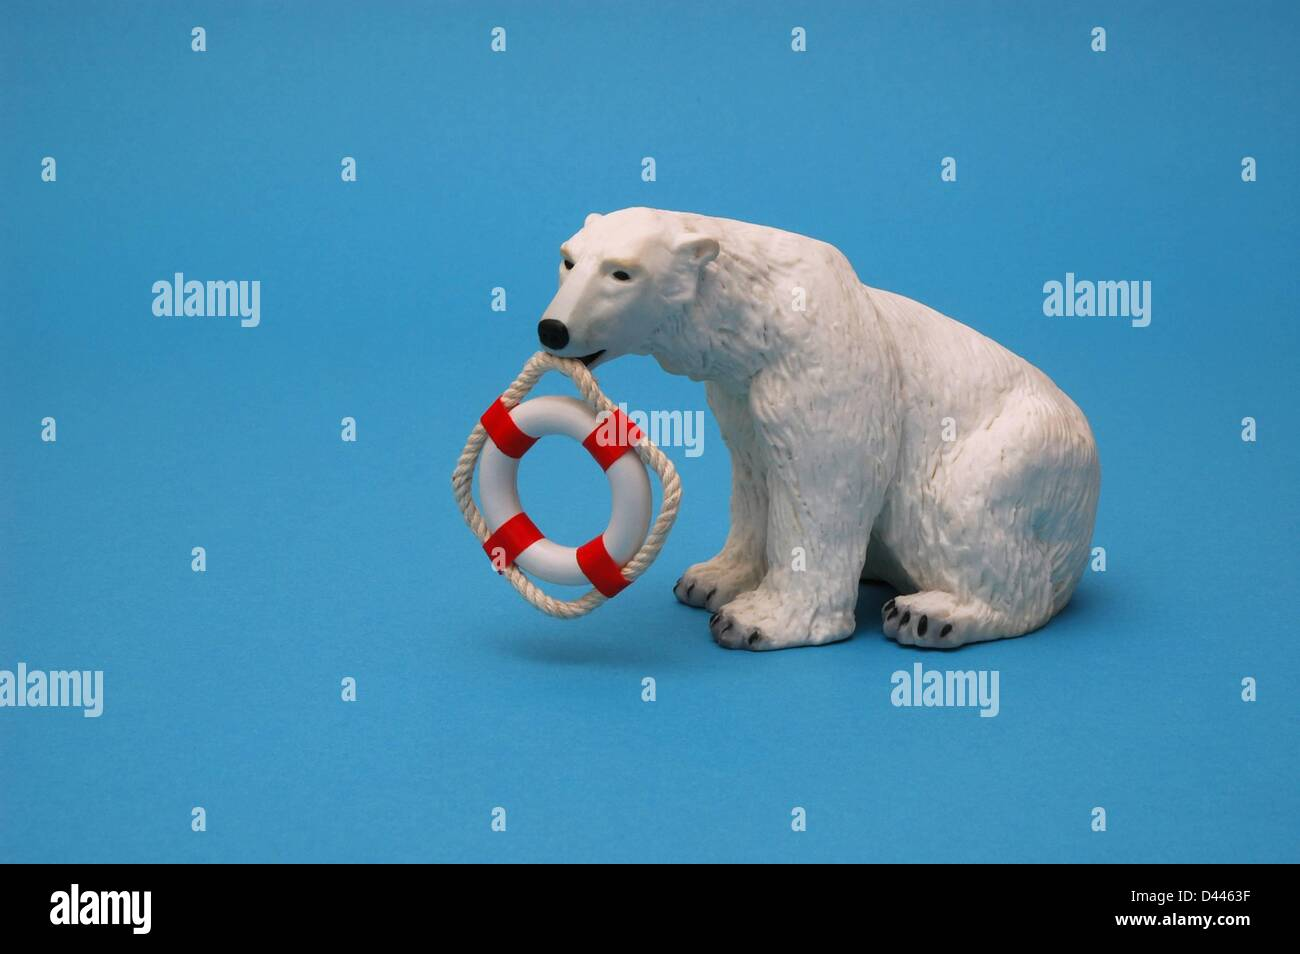 Illustration - A miniature polar bear holds a minature safety buoy in his mouth in Berlin, Germany, 22 December 2007. Photo: Berliner Verlag/S.Steinach Stock Photo